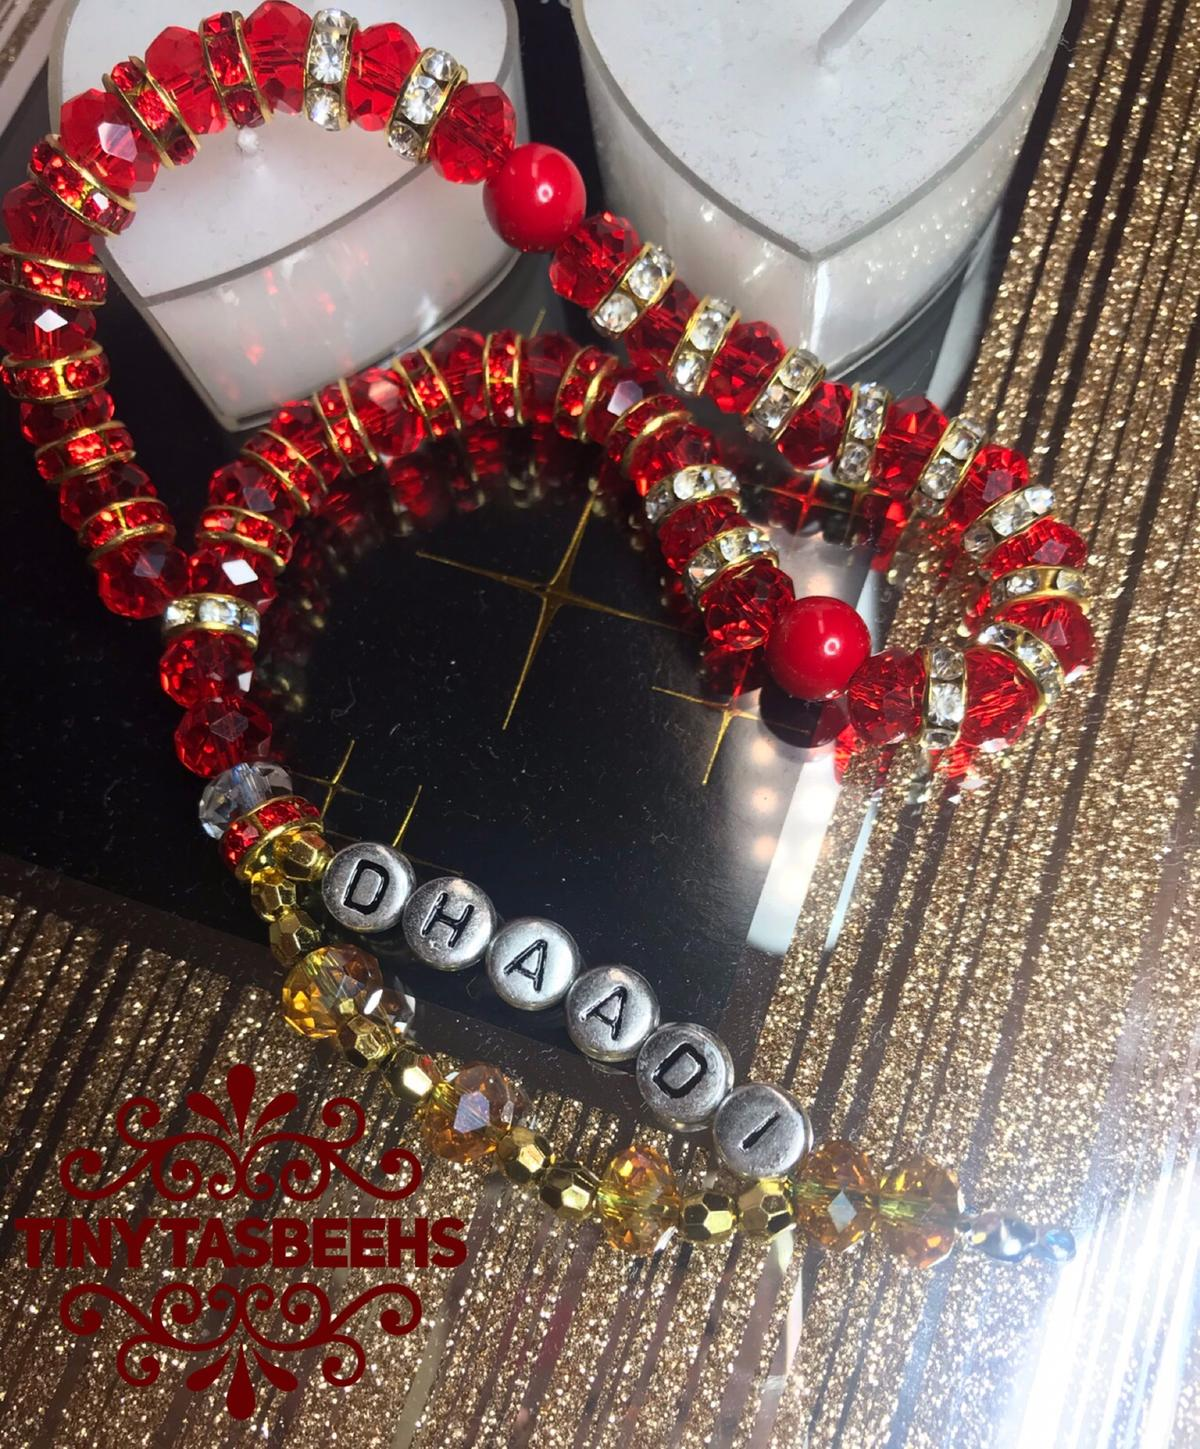 "Red gleams like the Love 💖 for Allahﷻ, most merciful ✨📿✨📿 A beautiful Red tasbeeh 📿made to order ✨📿✨📿 Order your today the gift that gives blessings ✨📿 Alhumdililah ✨📿✨📿 Make Dhikr (devotional acts) with your tasbeeh, we all need to be patient sometimes as we await things to happen. ✨📿✨📿 ""Be patient Indeed Allahﷻ, (most merciful) is with those who patiently endure"" (8:46) ✨ ....""and seek help in patience and prayer"" (2:153-154) ✨📿✨📿✨ Message me today for details ✨📿✨📿 33 bead Tasbeeh 📿"